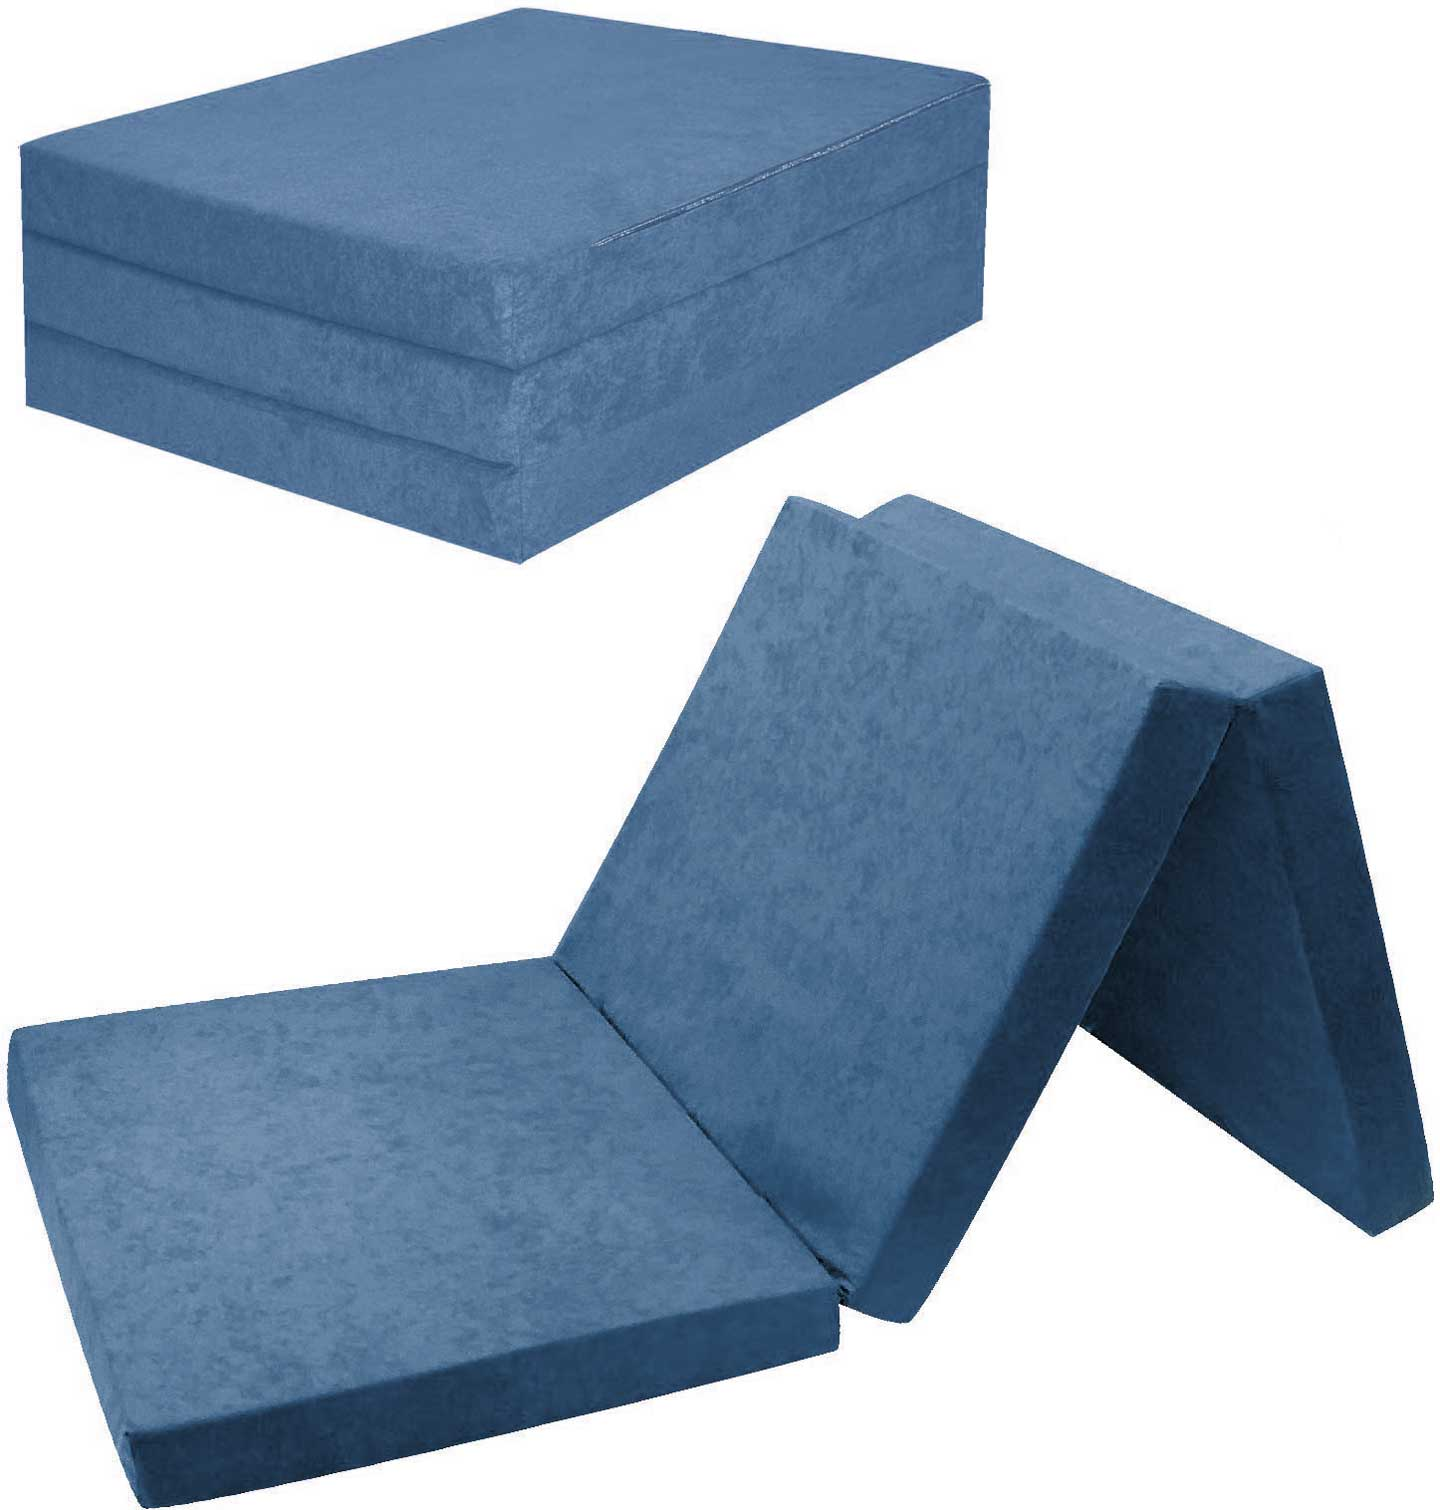 Fold Up Foam Mattress Rollaway Bed Reviews The Best Fold Up Bed For Your Money China Folding